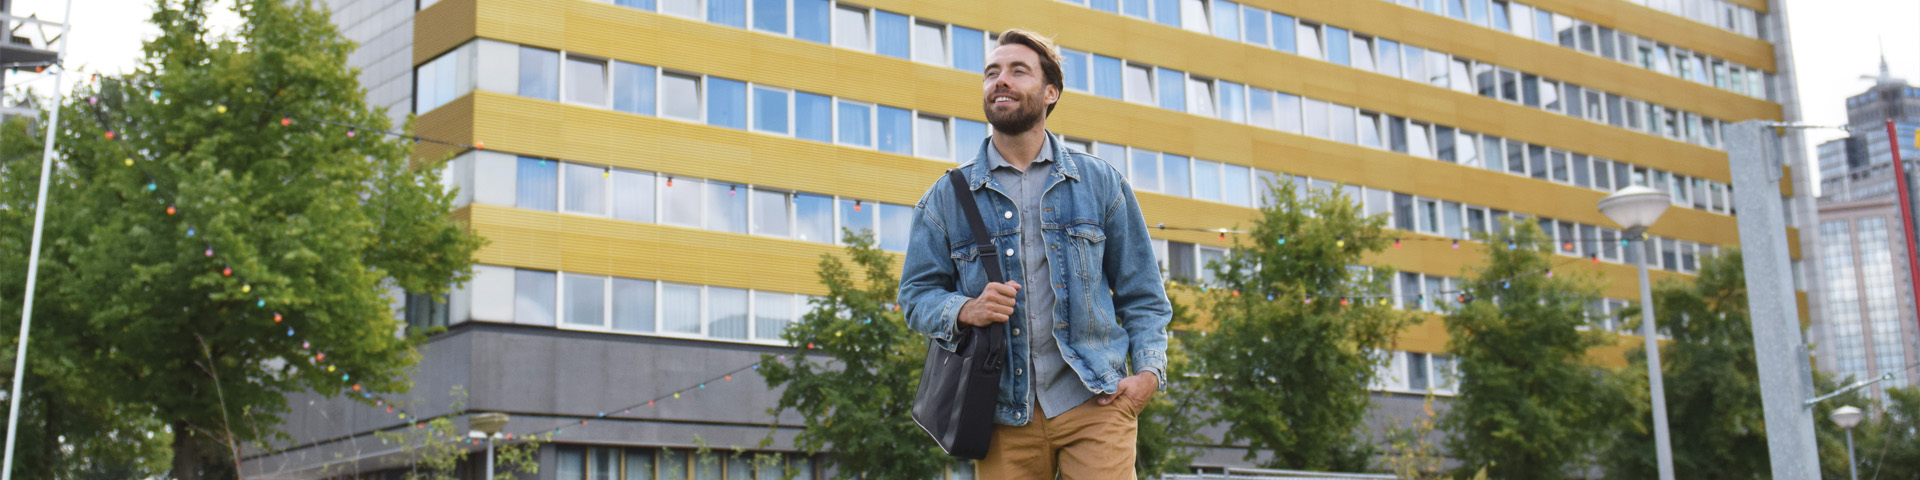 man in front of building Europahuis in Amsterdam